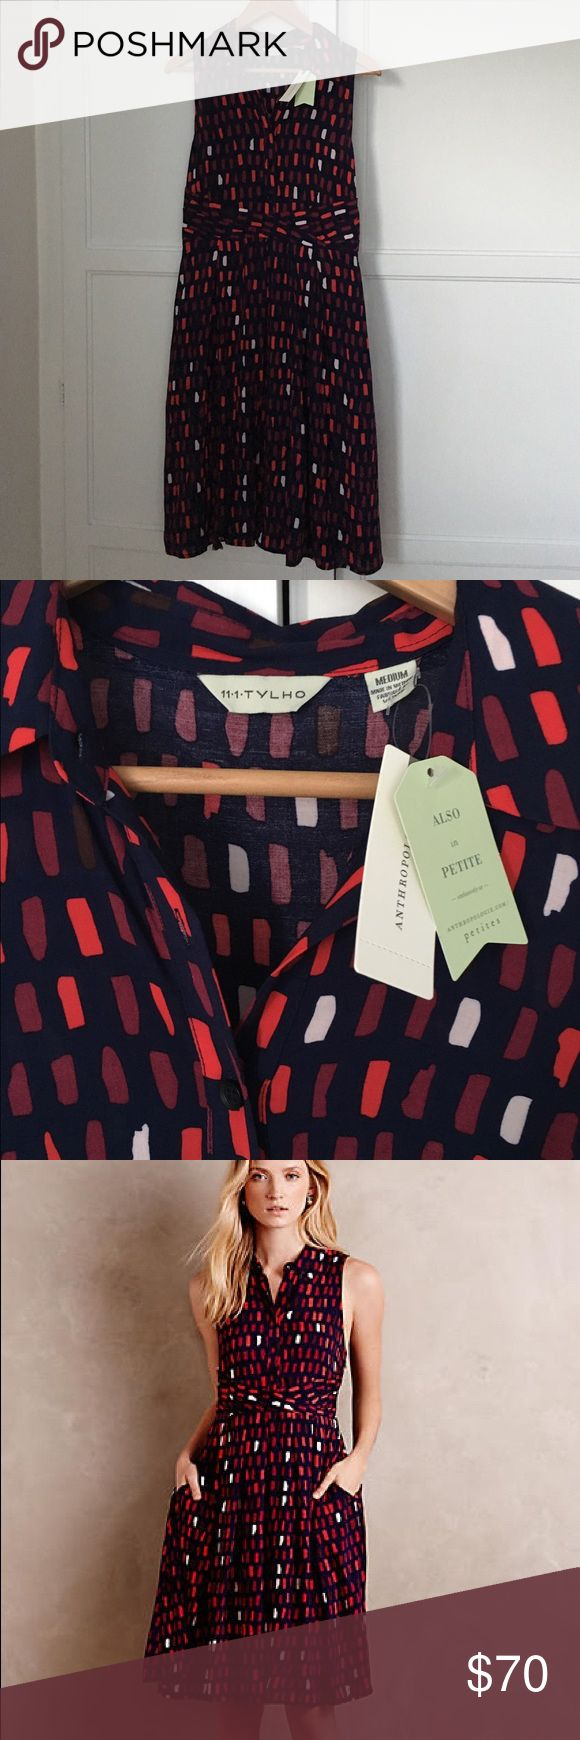 "anthro ""Brynn"" shirt dress Beautiful shirt dress with navy and red, maroon and white print. Woven rayon, machine wash. NWT. Anthropologie Dresses"